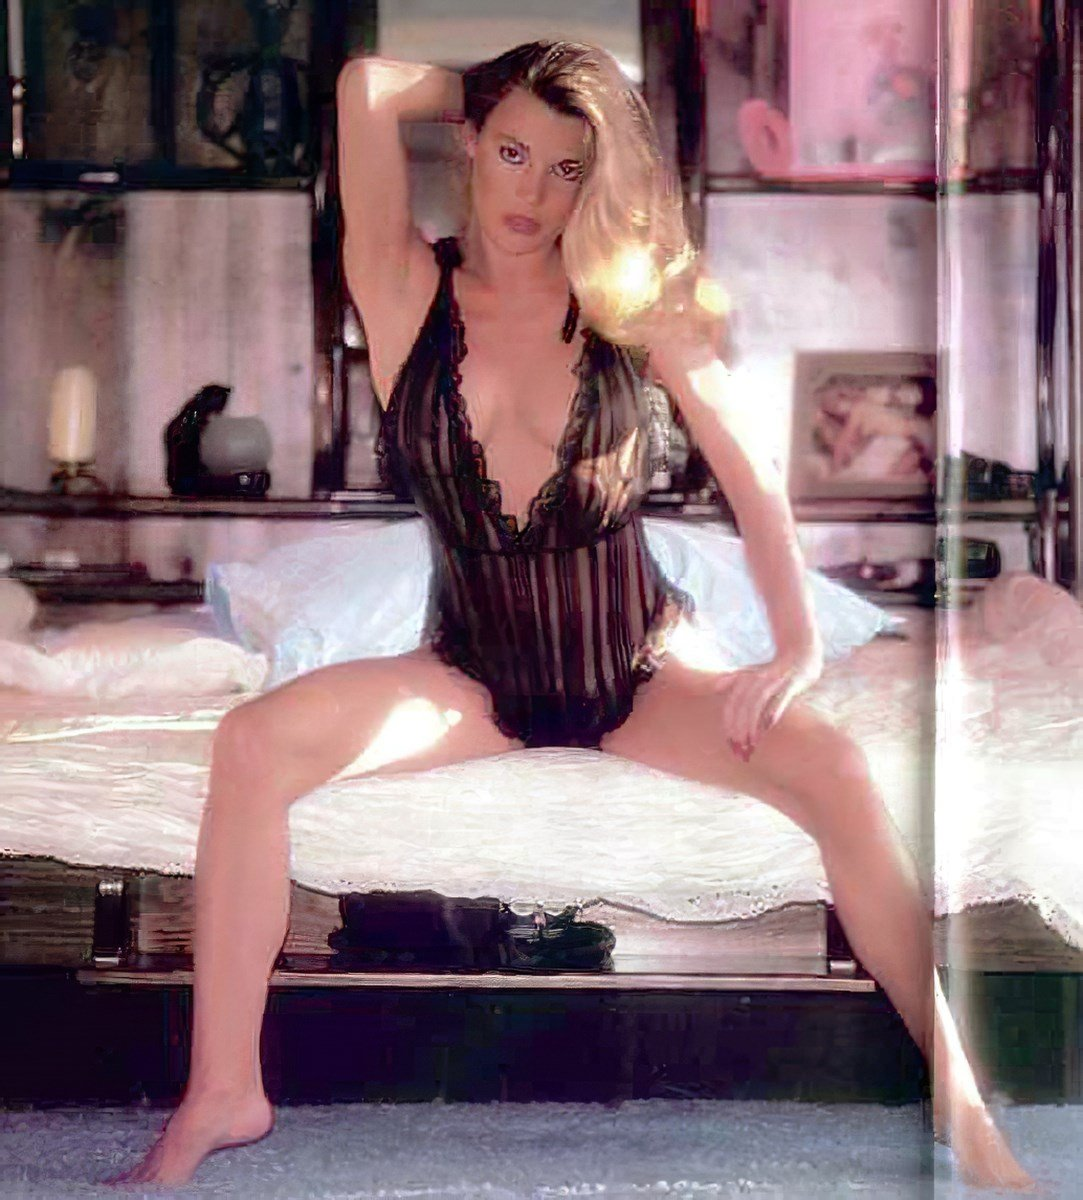 Vanna White Nude Playboy Photos Remastered